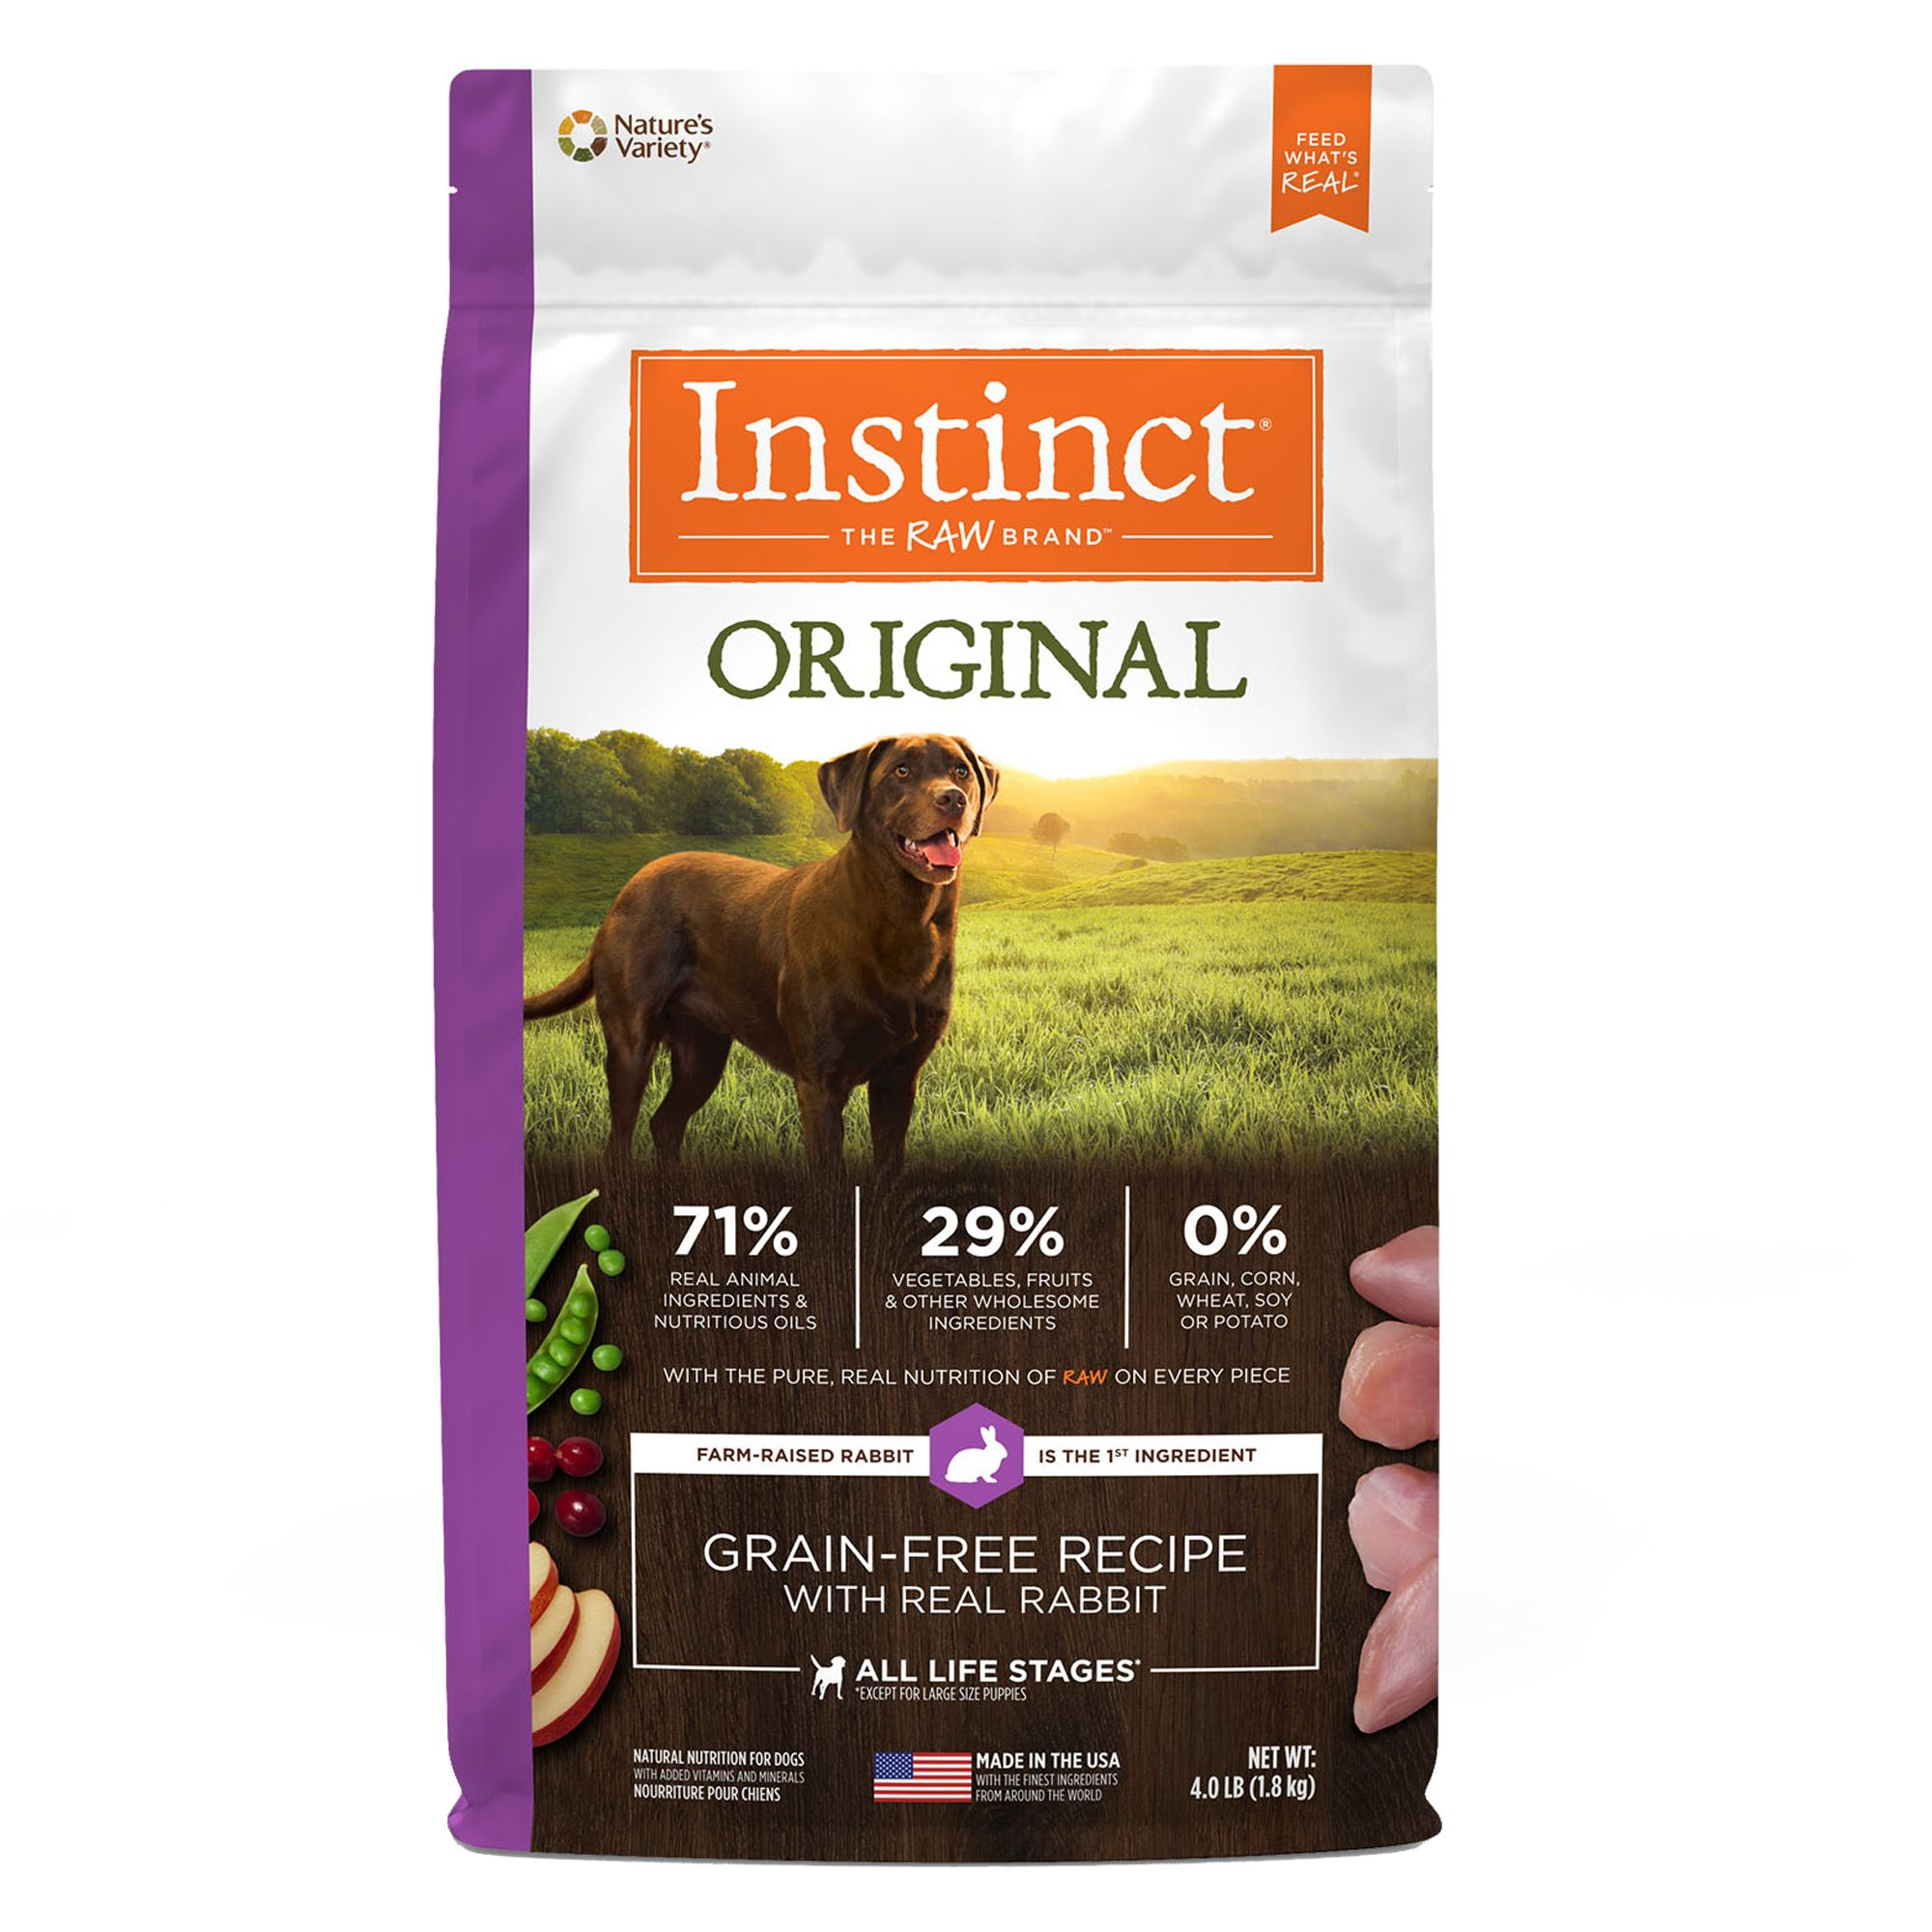 Natures Variety Instinct Original Dog Food Natural Grain Free Raw Rabbit Size 4 Ft